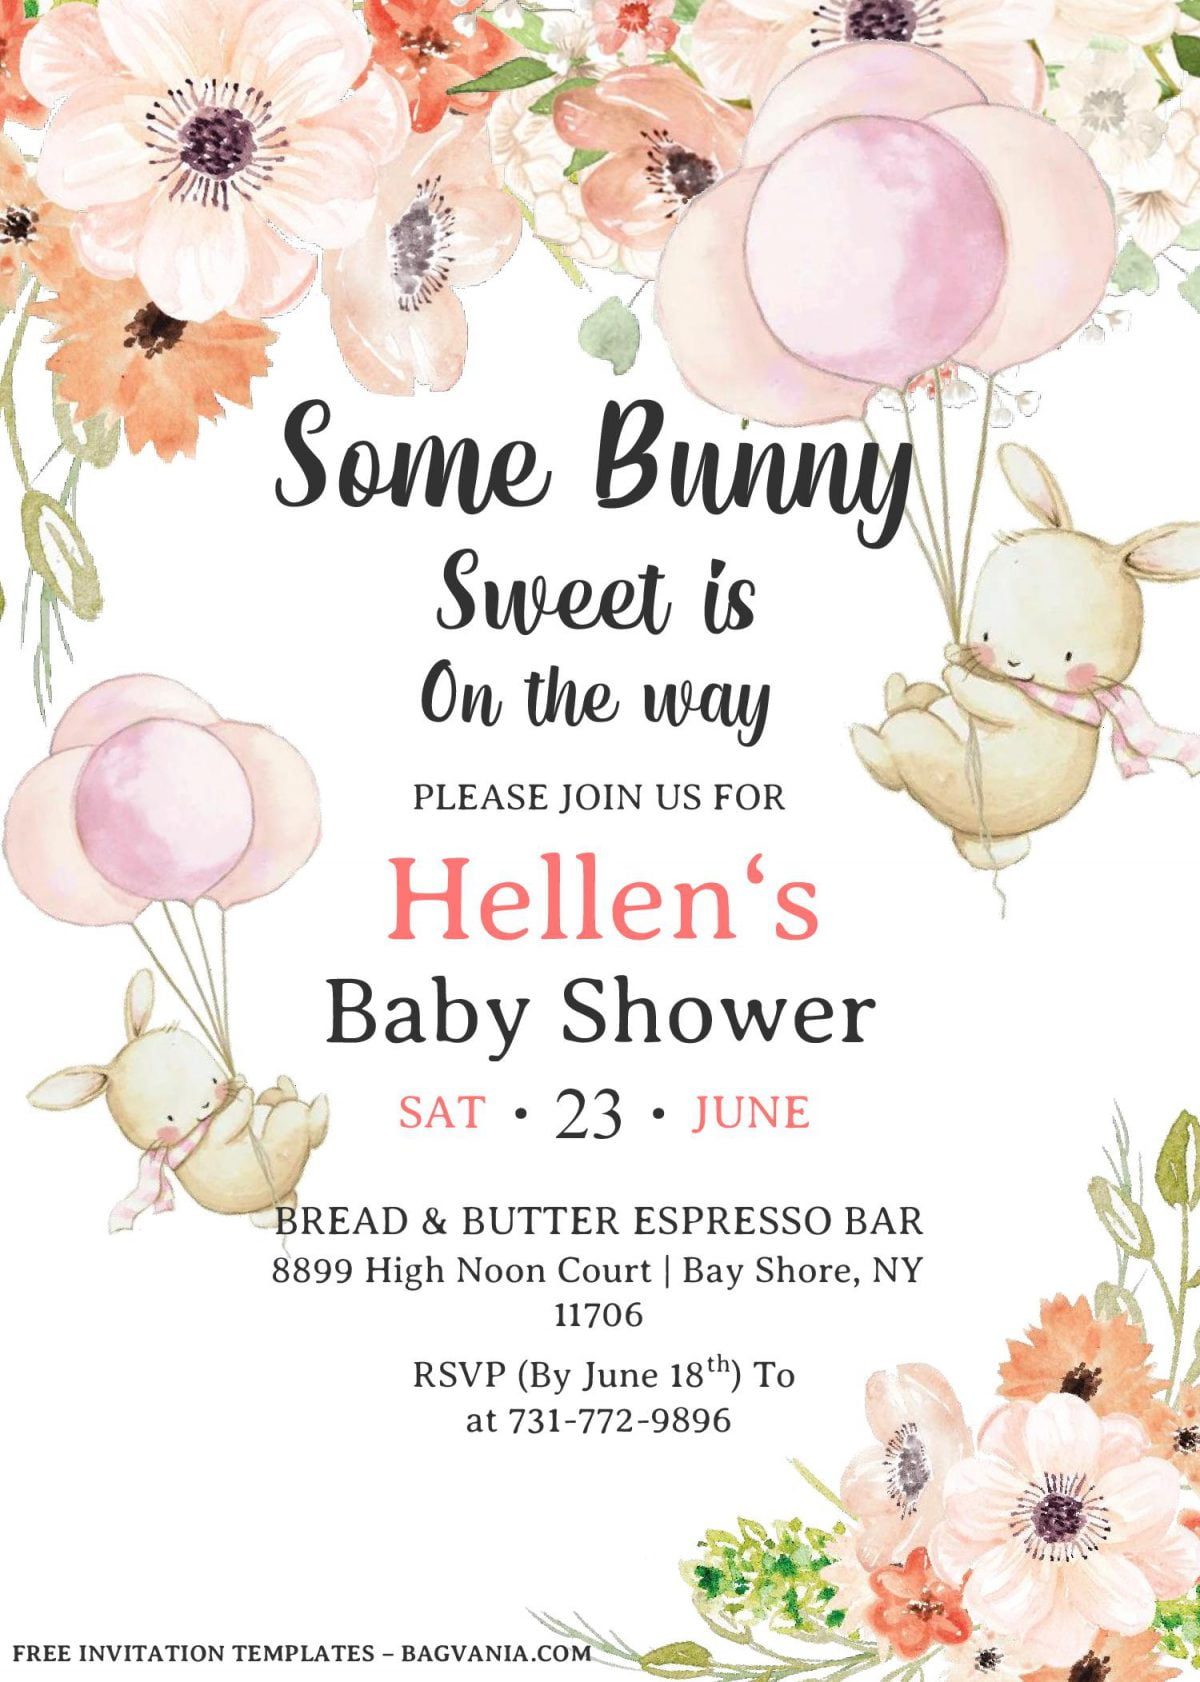 Some Bunny Invitation Templates - Editable With MS Word and has portrait orientation